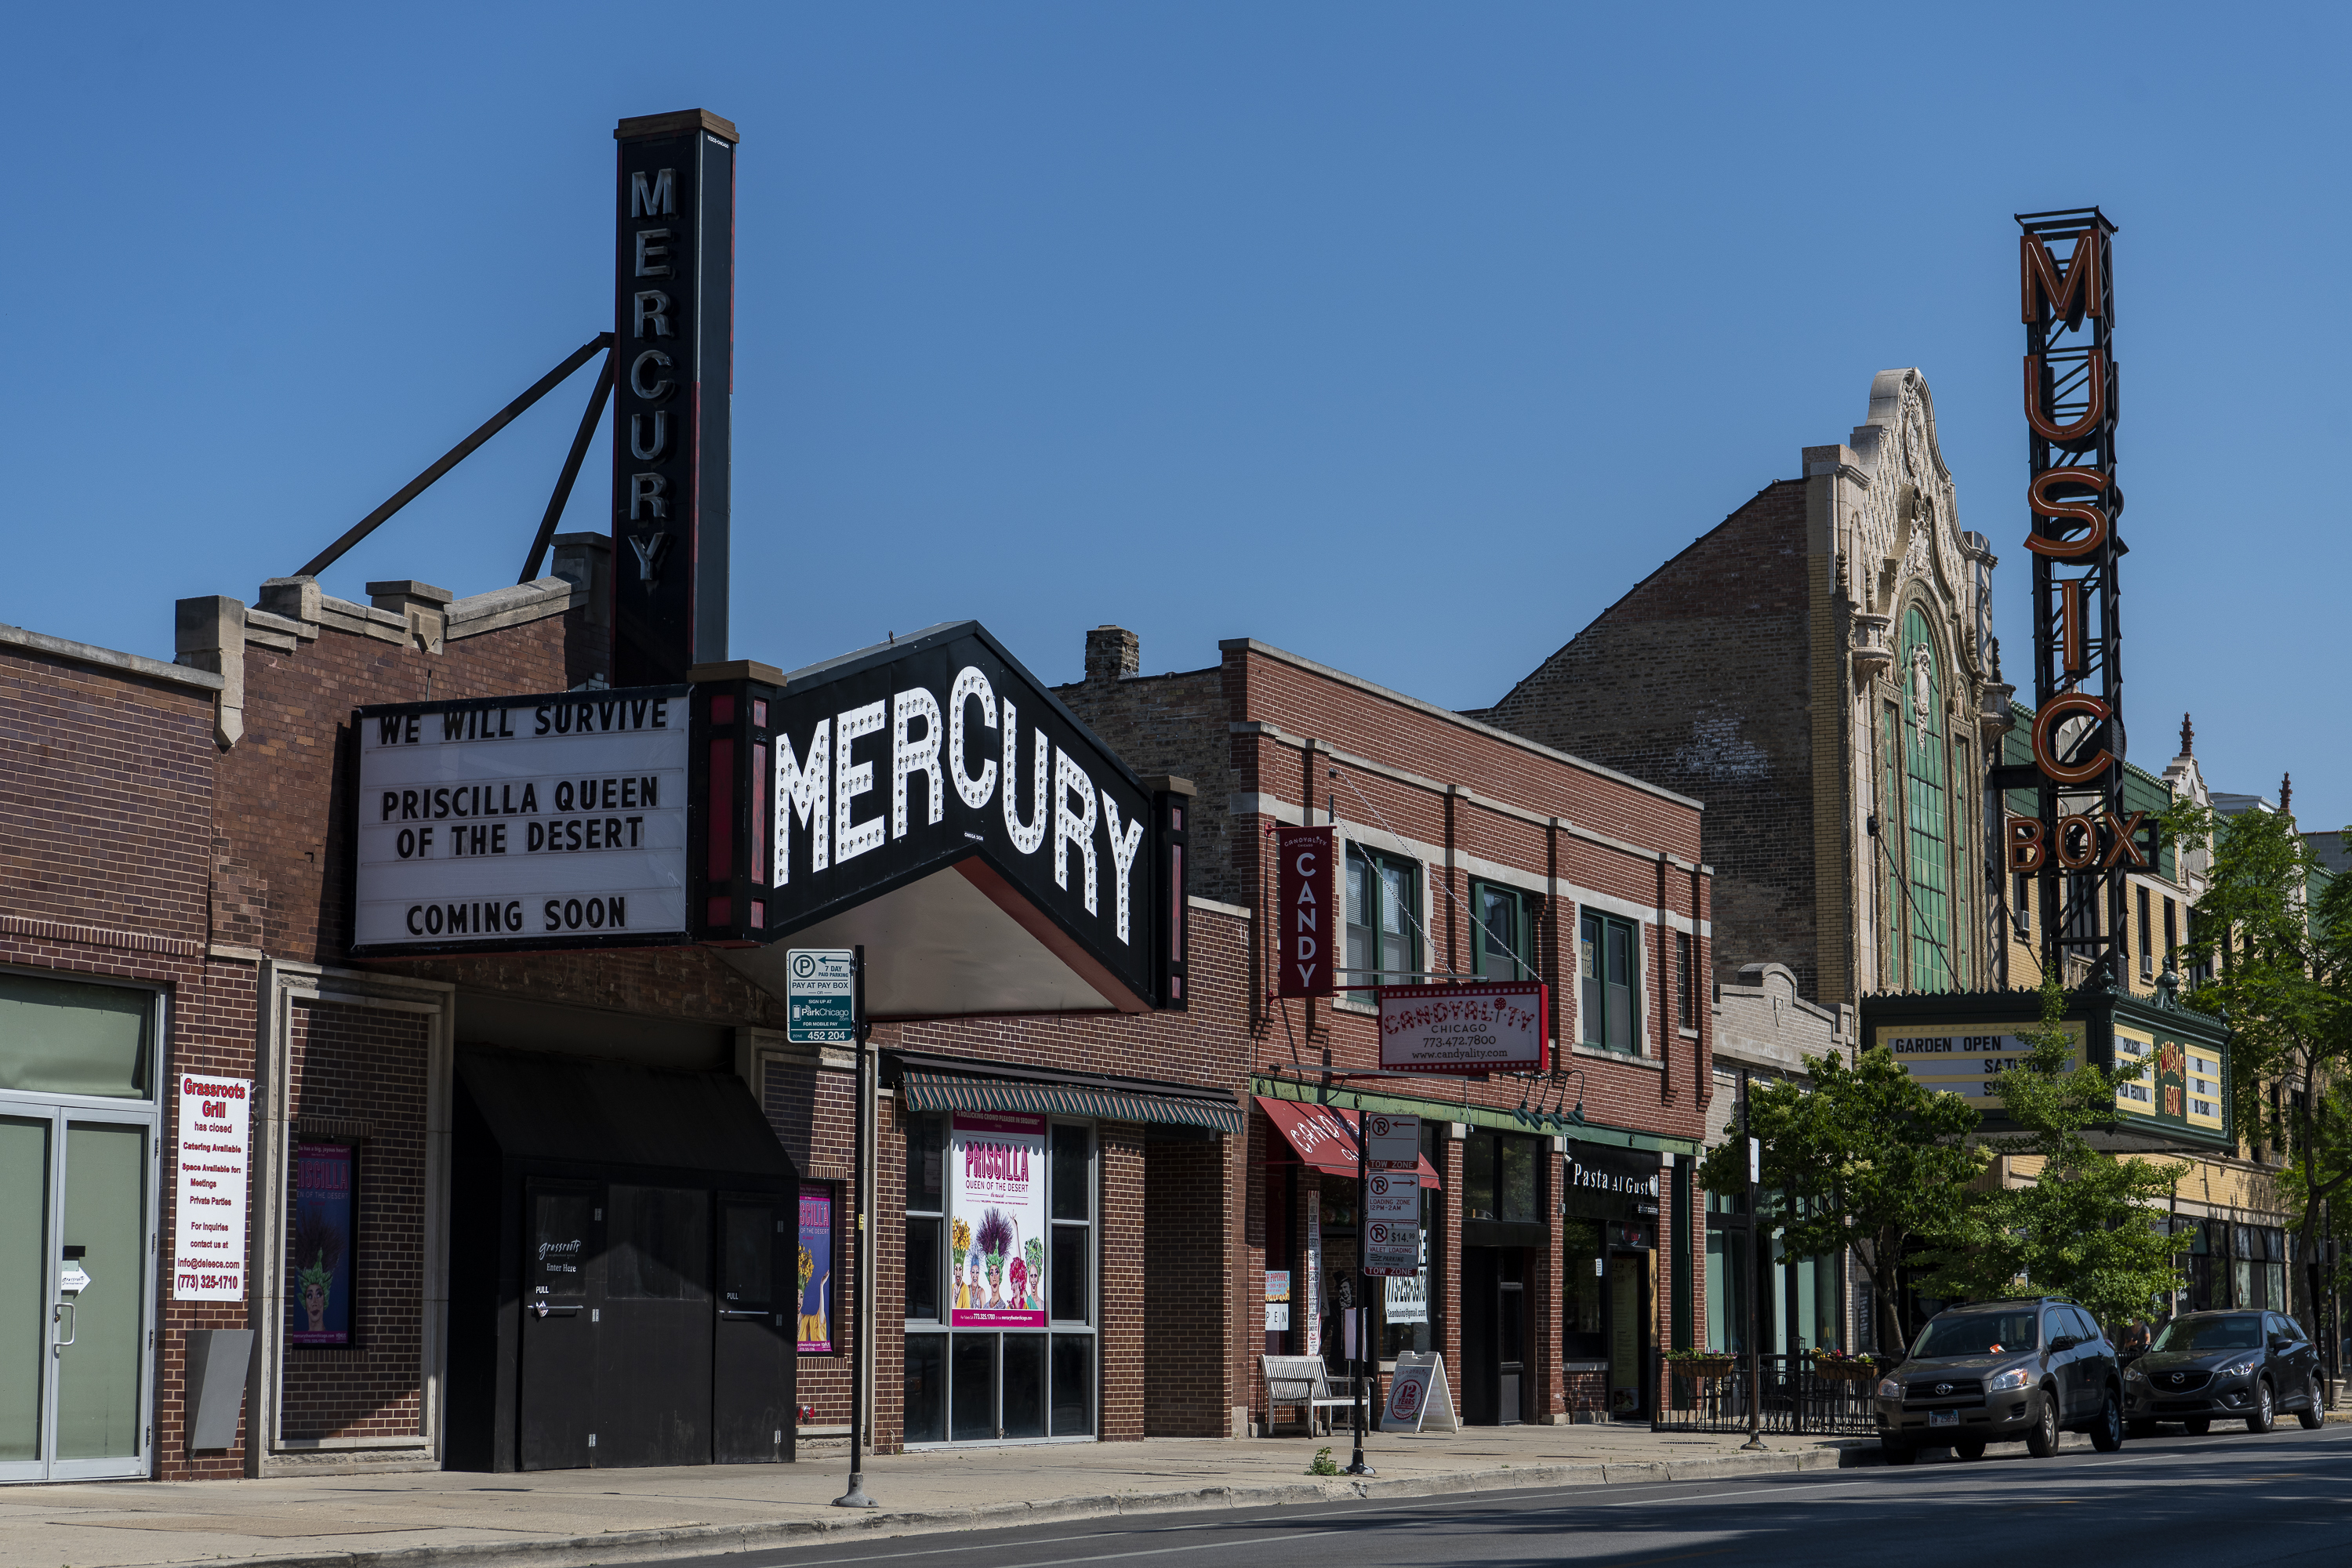 The Mercury Theater, at 3745 N. Southport, is closing its doors permanently at the end of June.